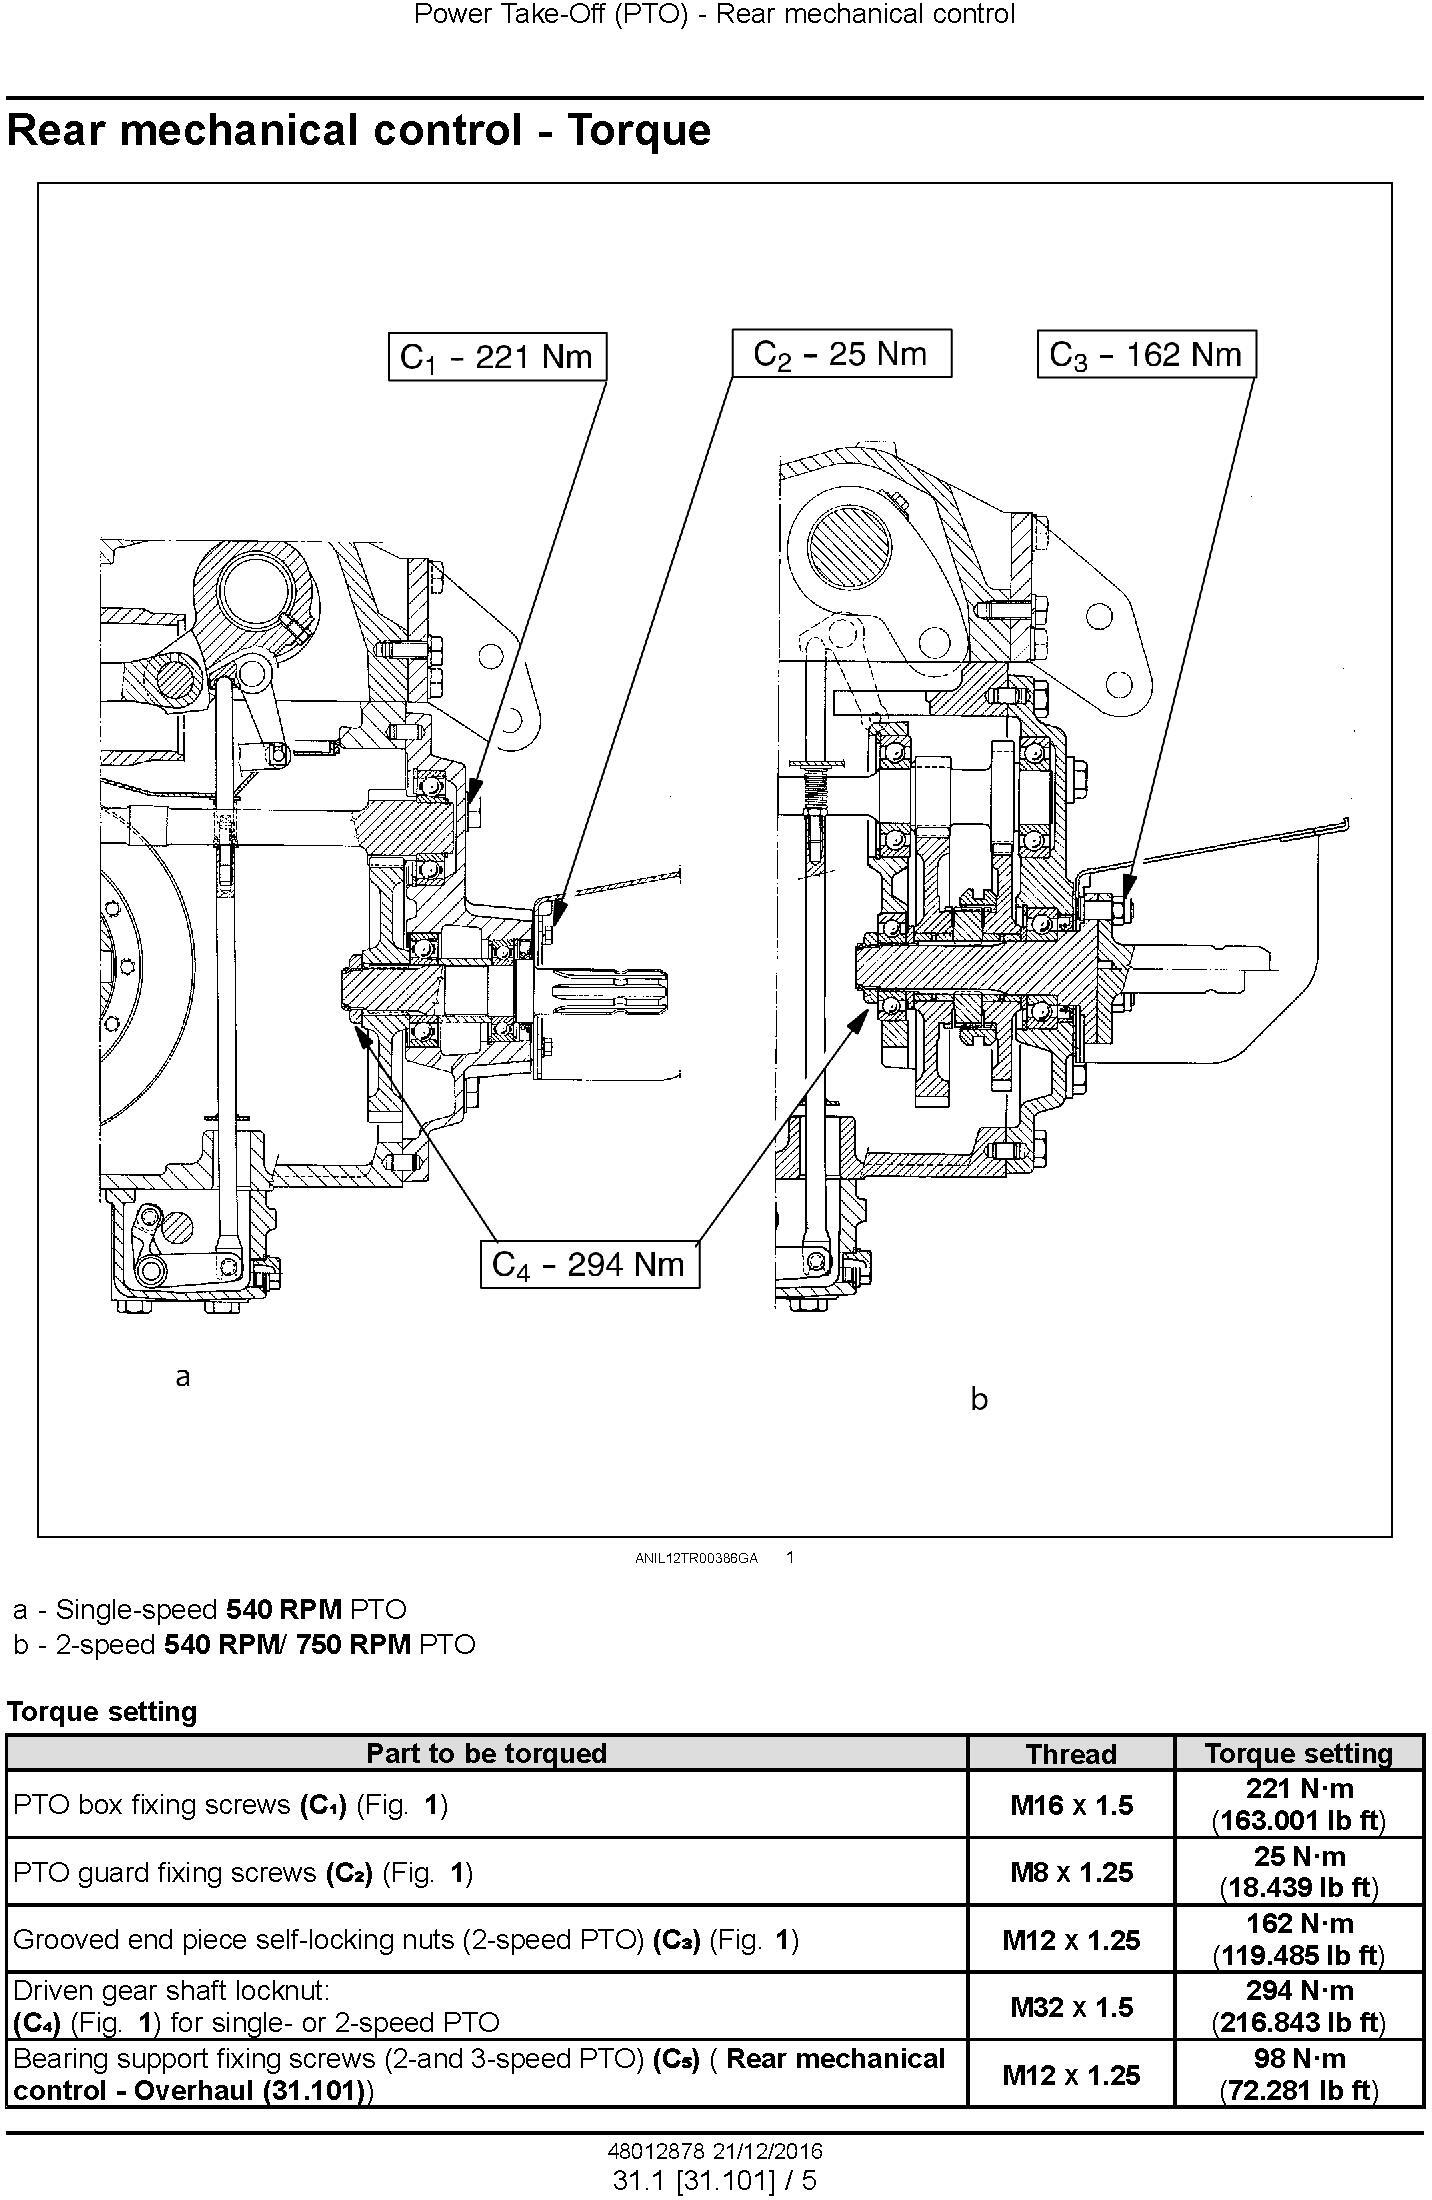 New Holland TD5.65, TD5.75, TD5.80, TD5.90, TD5.100M, TD5.110 Tractors Service Manual - 3